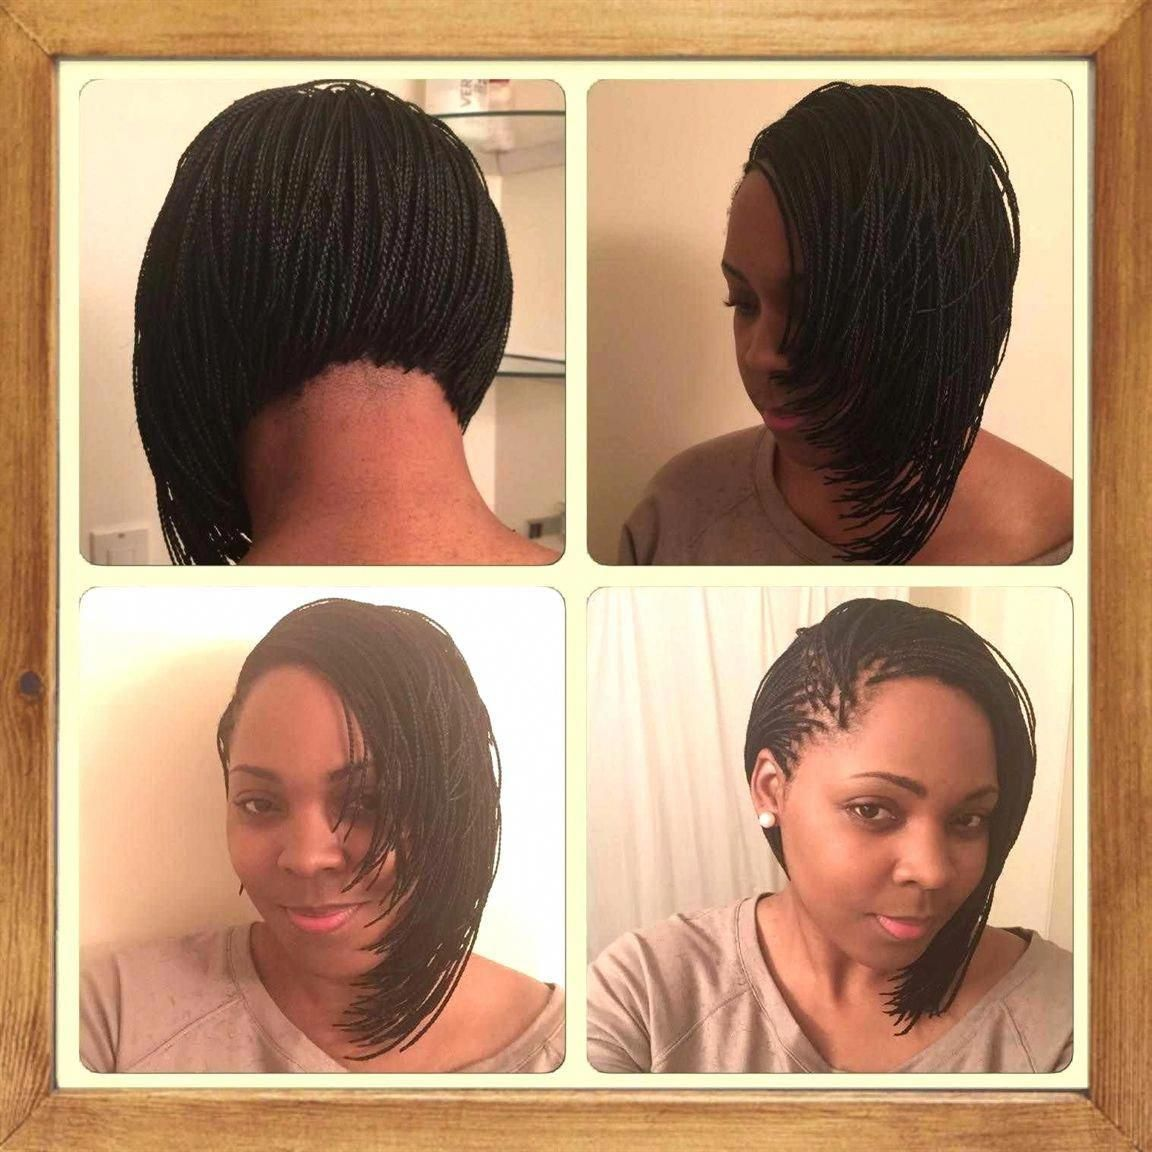 Up For In Short Bob Braids Hairstyles A Bob Box Braids With Color Longboxbraidswithcolor Bobboxbraids Braids Bob Style Bob Braids Hairstyles Bob Braids